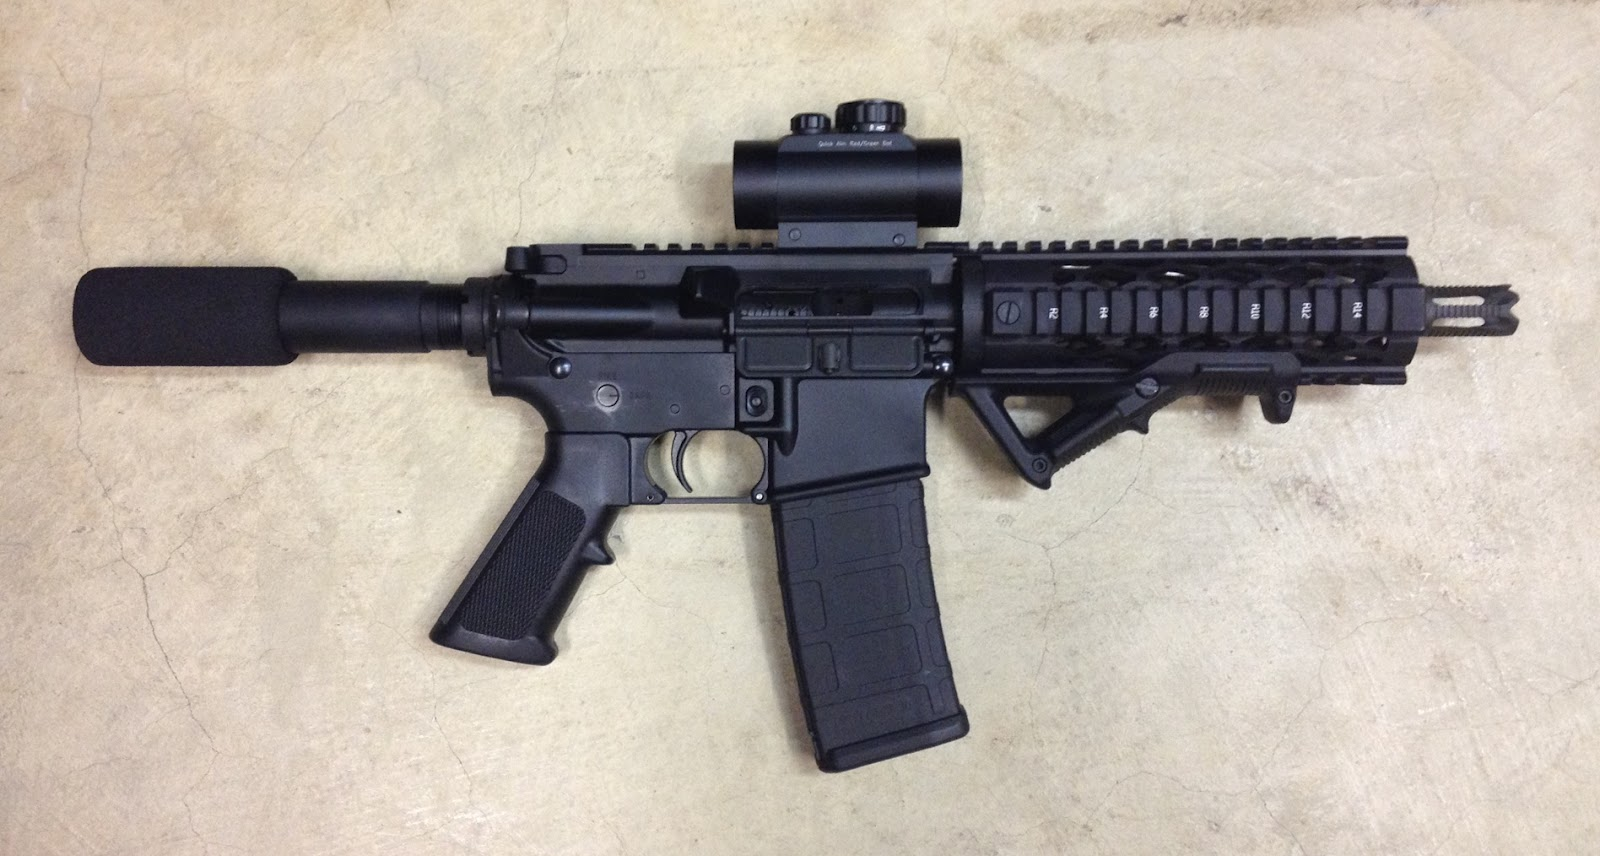 Build An Ar They Said It S Easy They Said